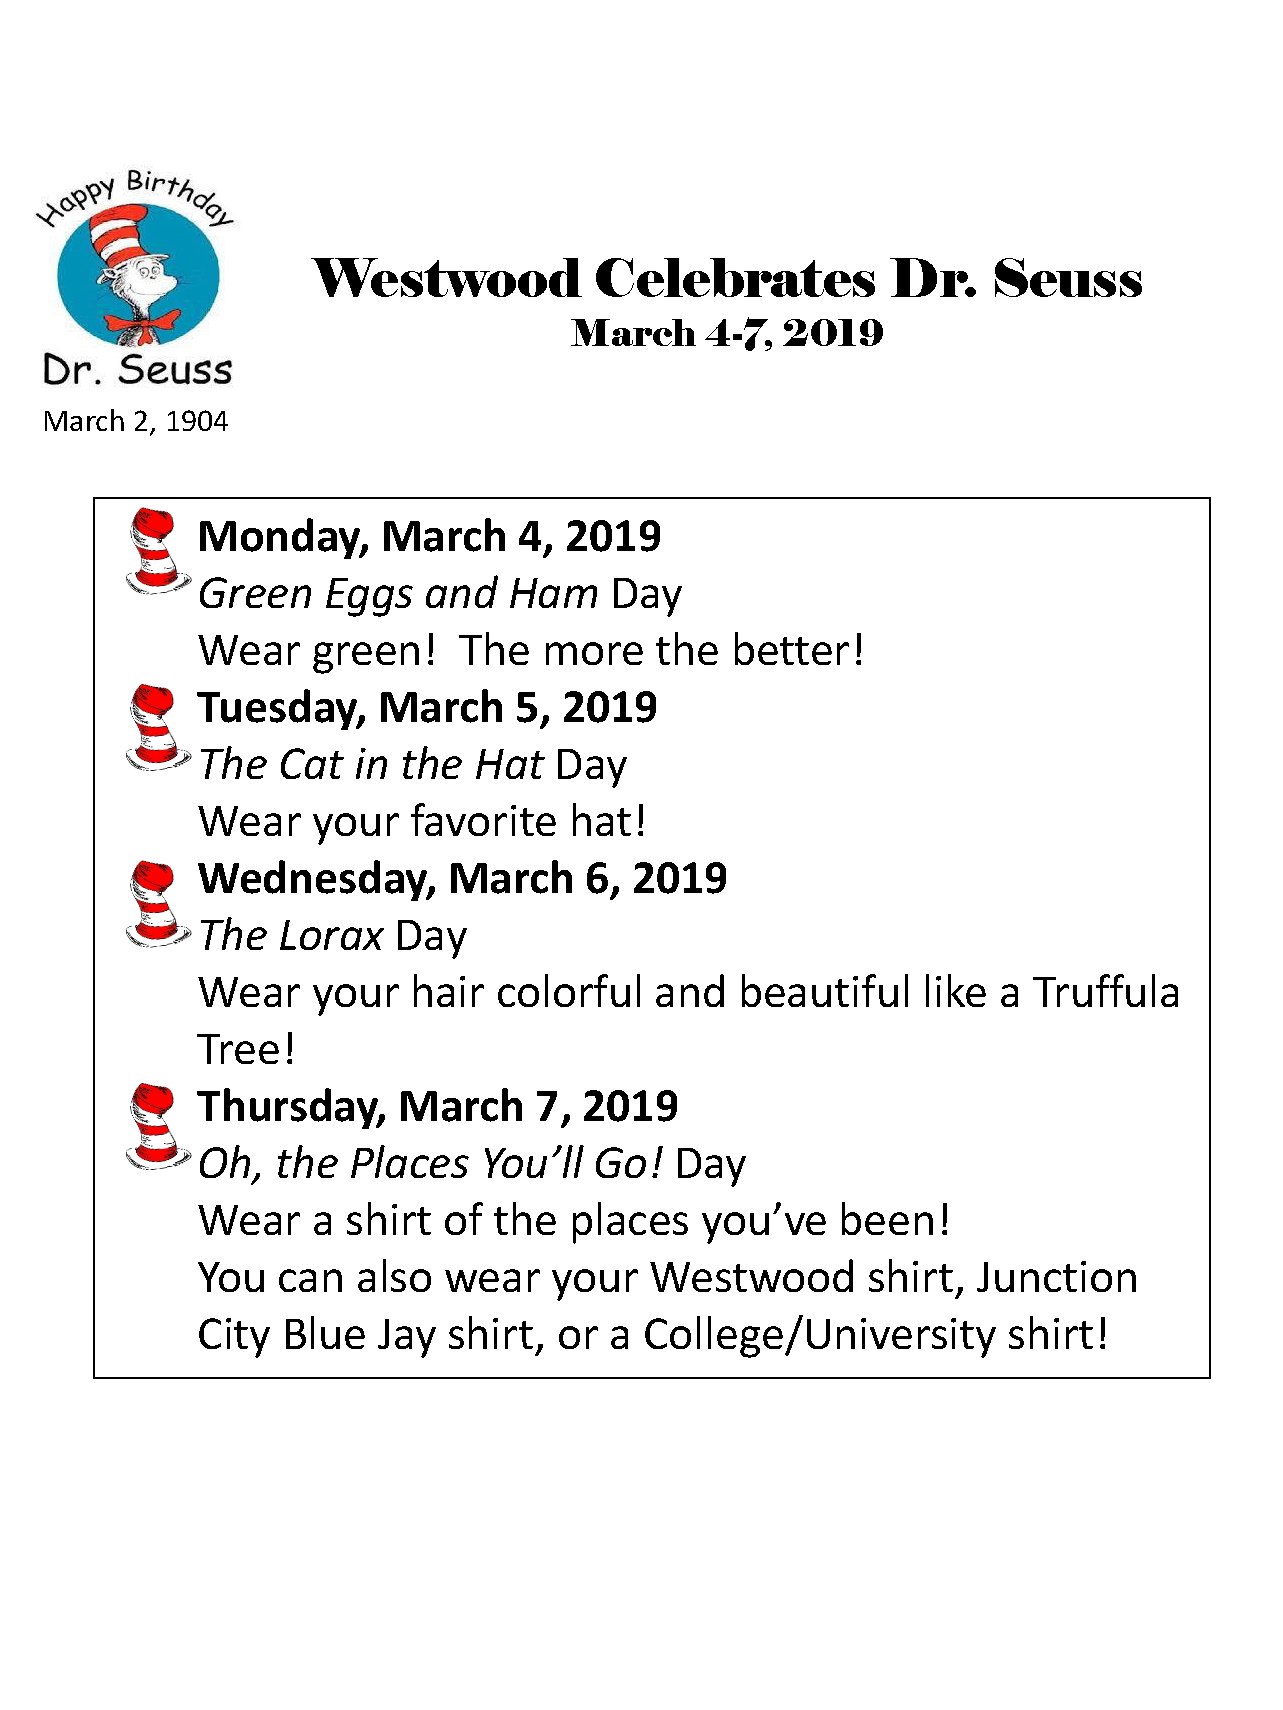 Image of the flyer announcing Westwood's Dr. Seuss activities.